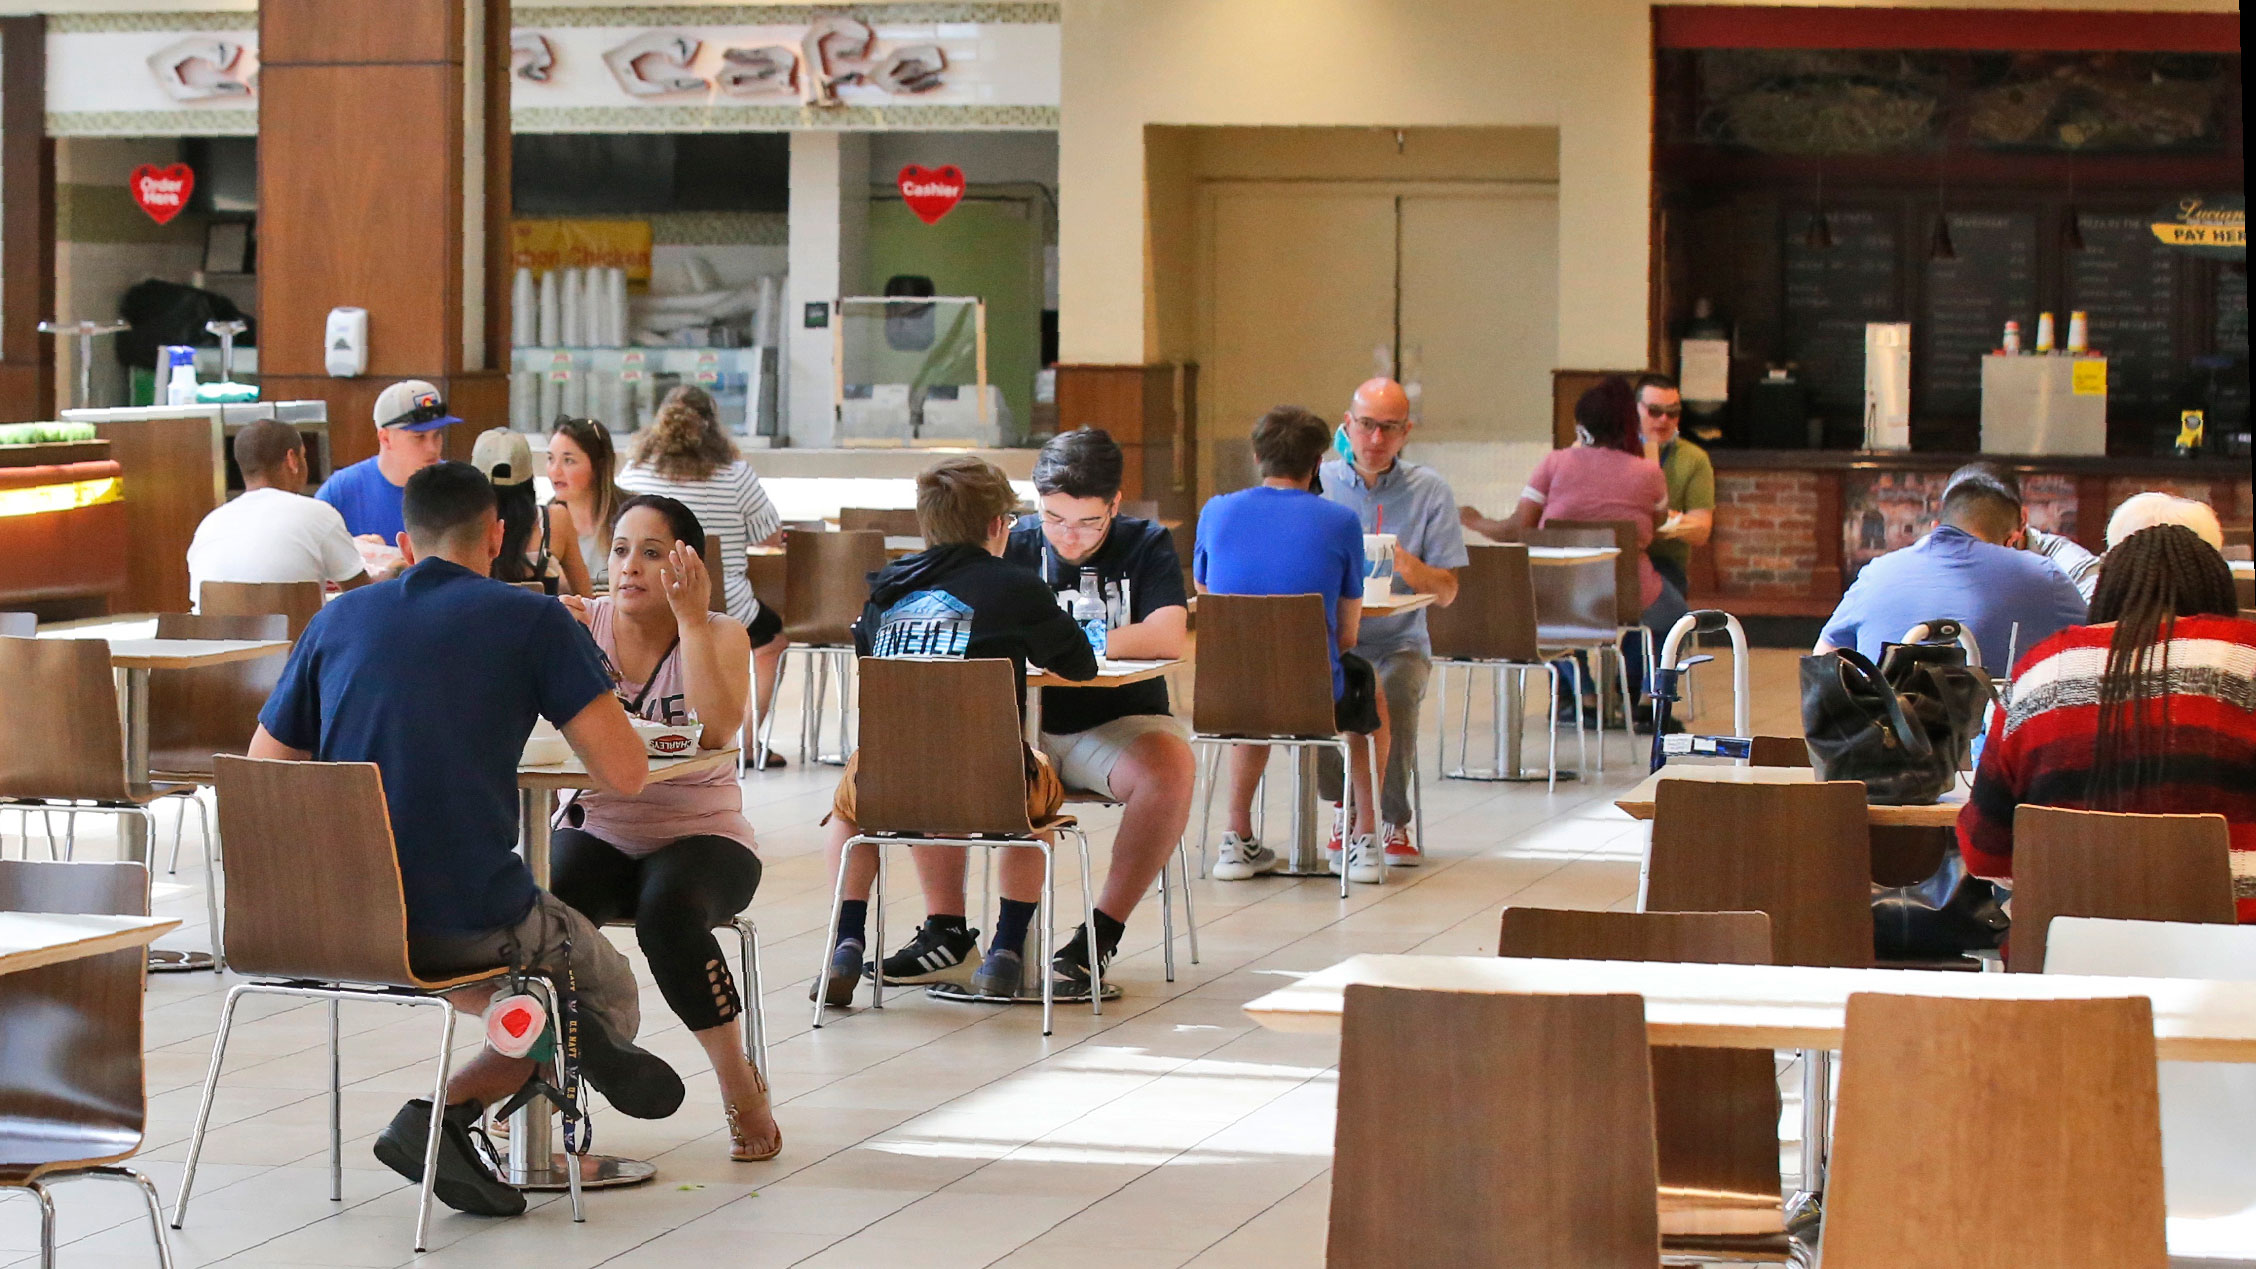 People eat in the food court of the recently reopened Penn Square Mall on May 1 in Oklahoma City.